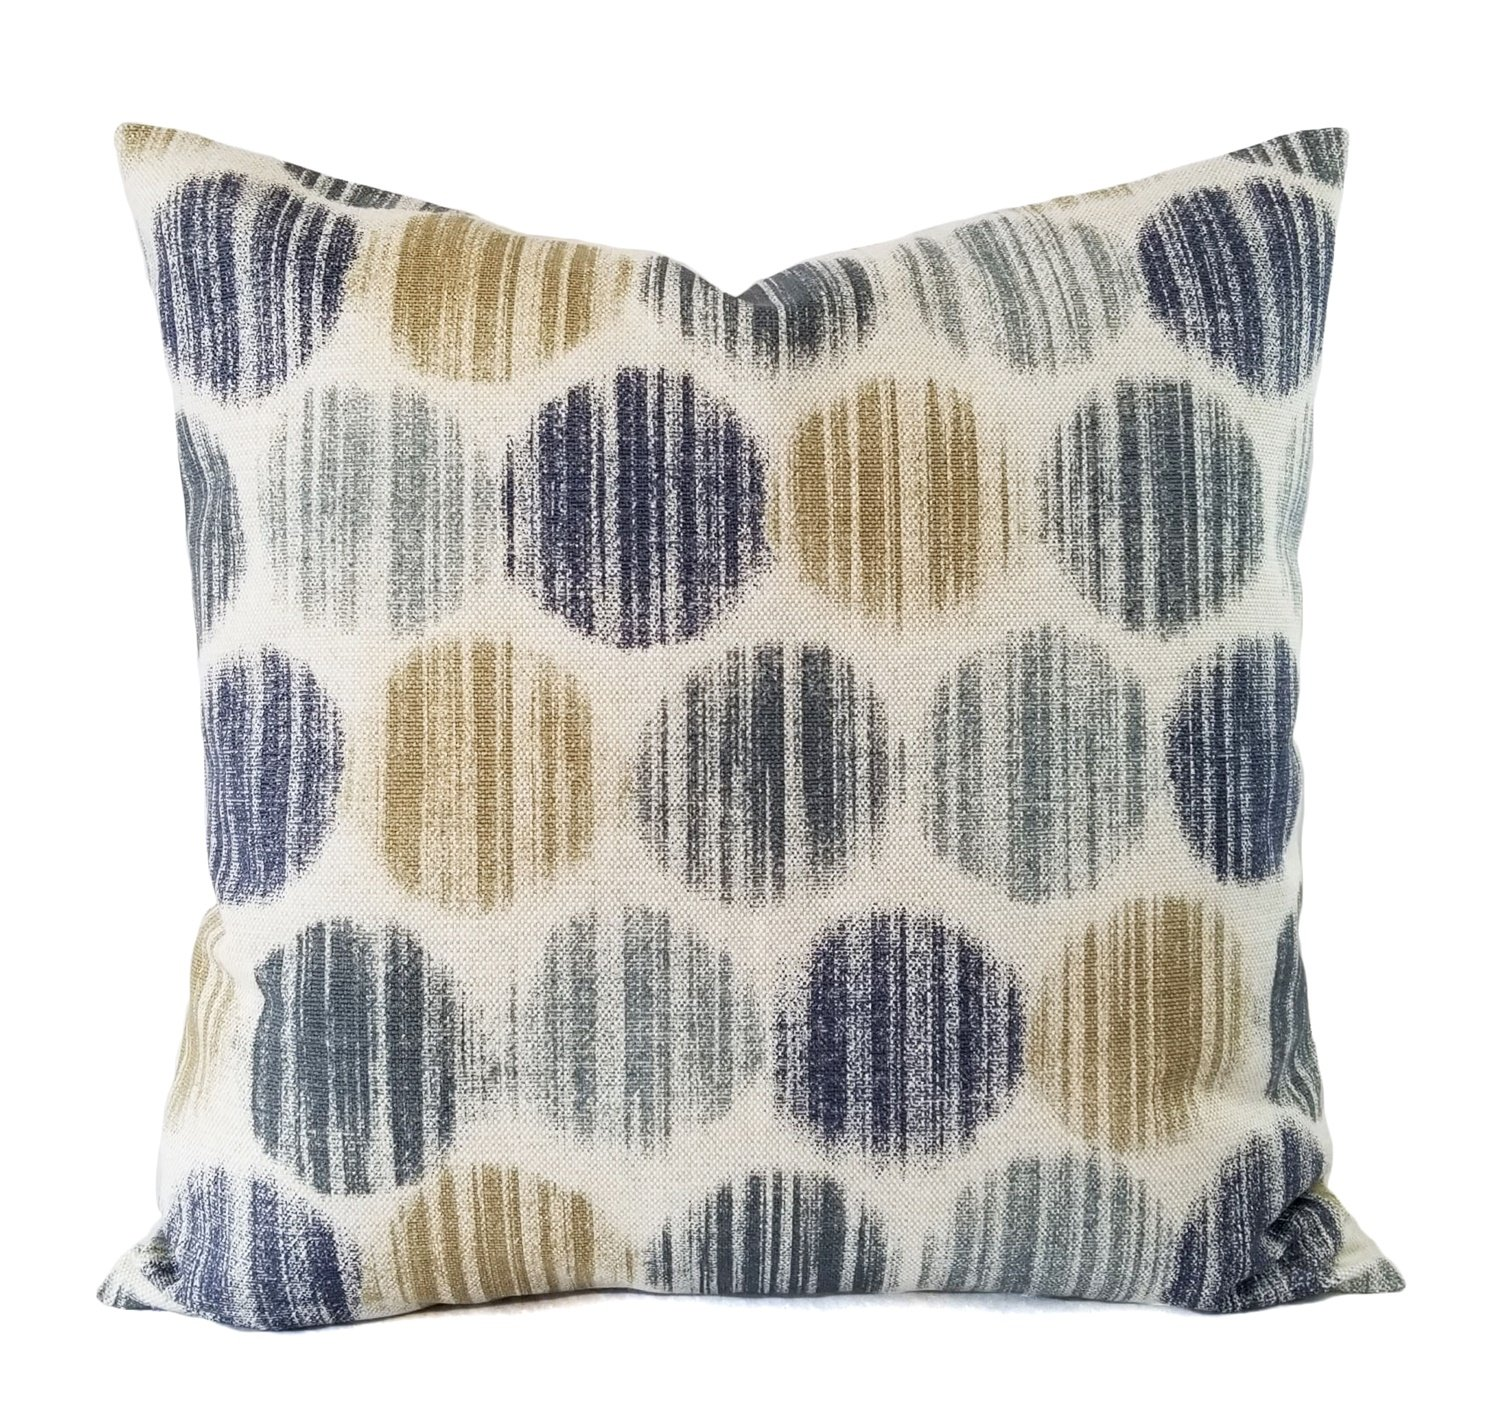 Blue and Brown Pillow Cover - Polka Dot Pillow - Custom Pillow Sham - Decorative Pillow Case - 16 x 16 Inch 18 x 18 Inch 20 x 20 Inch Throw Pillow Lumbar Pillow Euro Sham